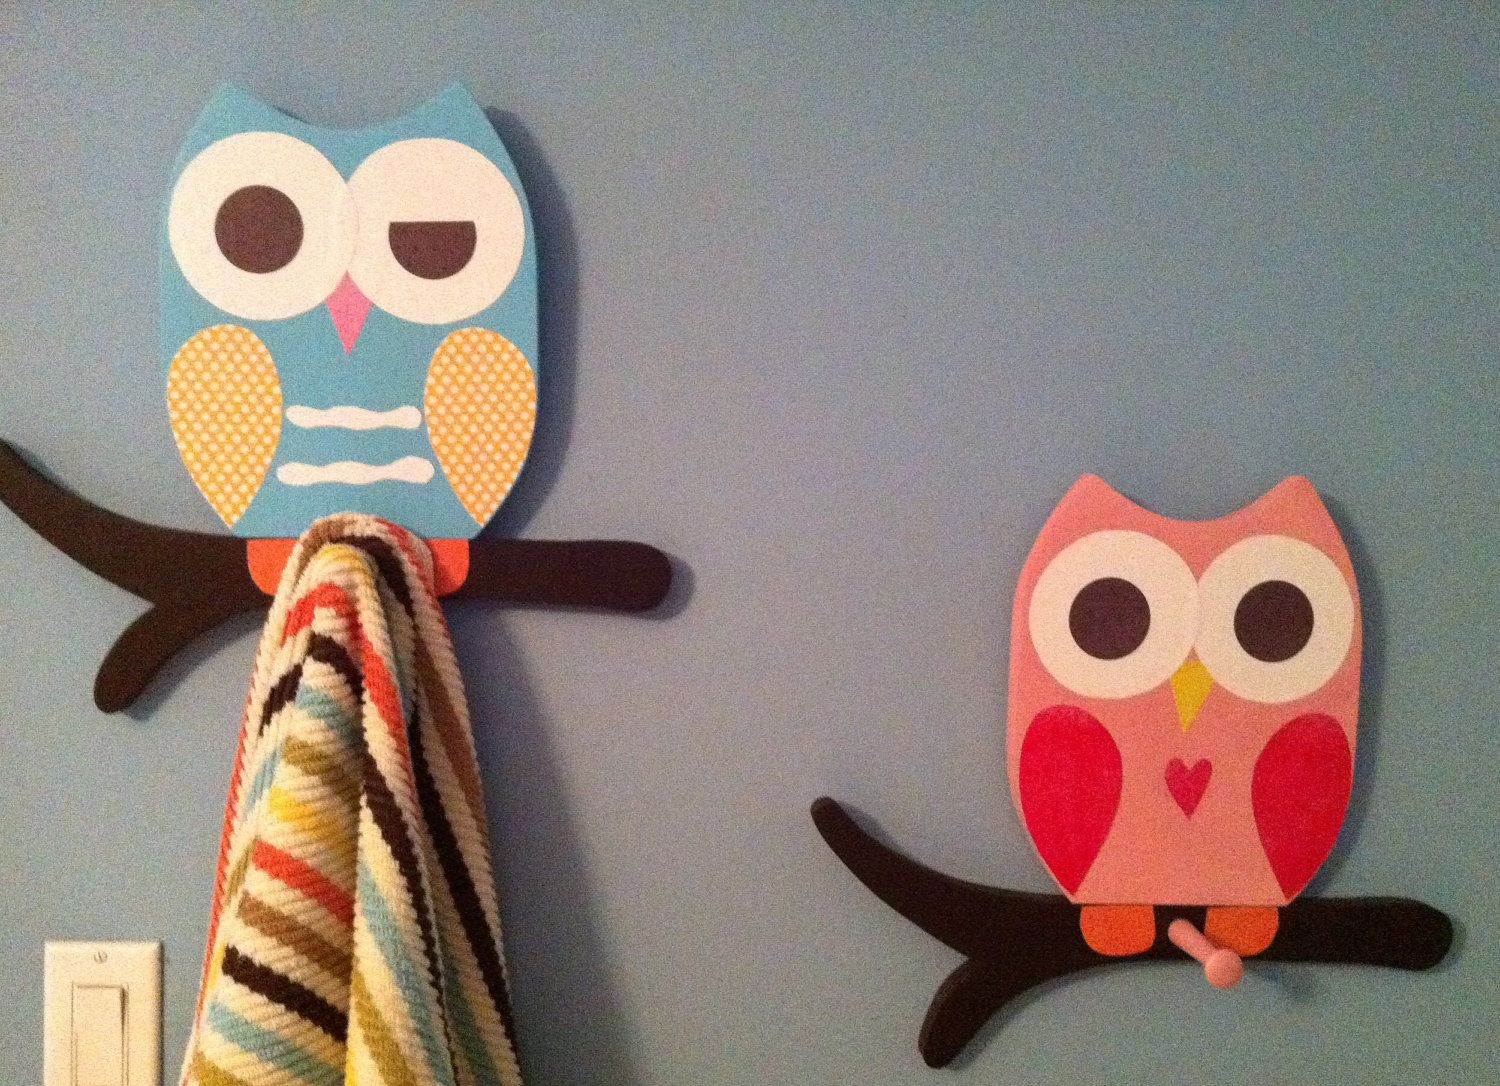 Owl Towel Racks Matches Saturday Knight Owl Bathroom Collection